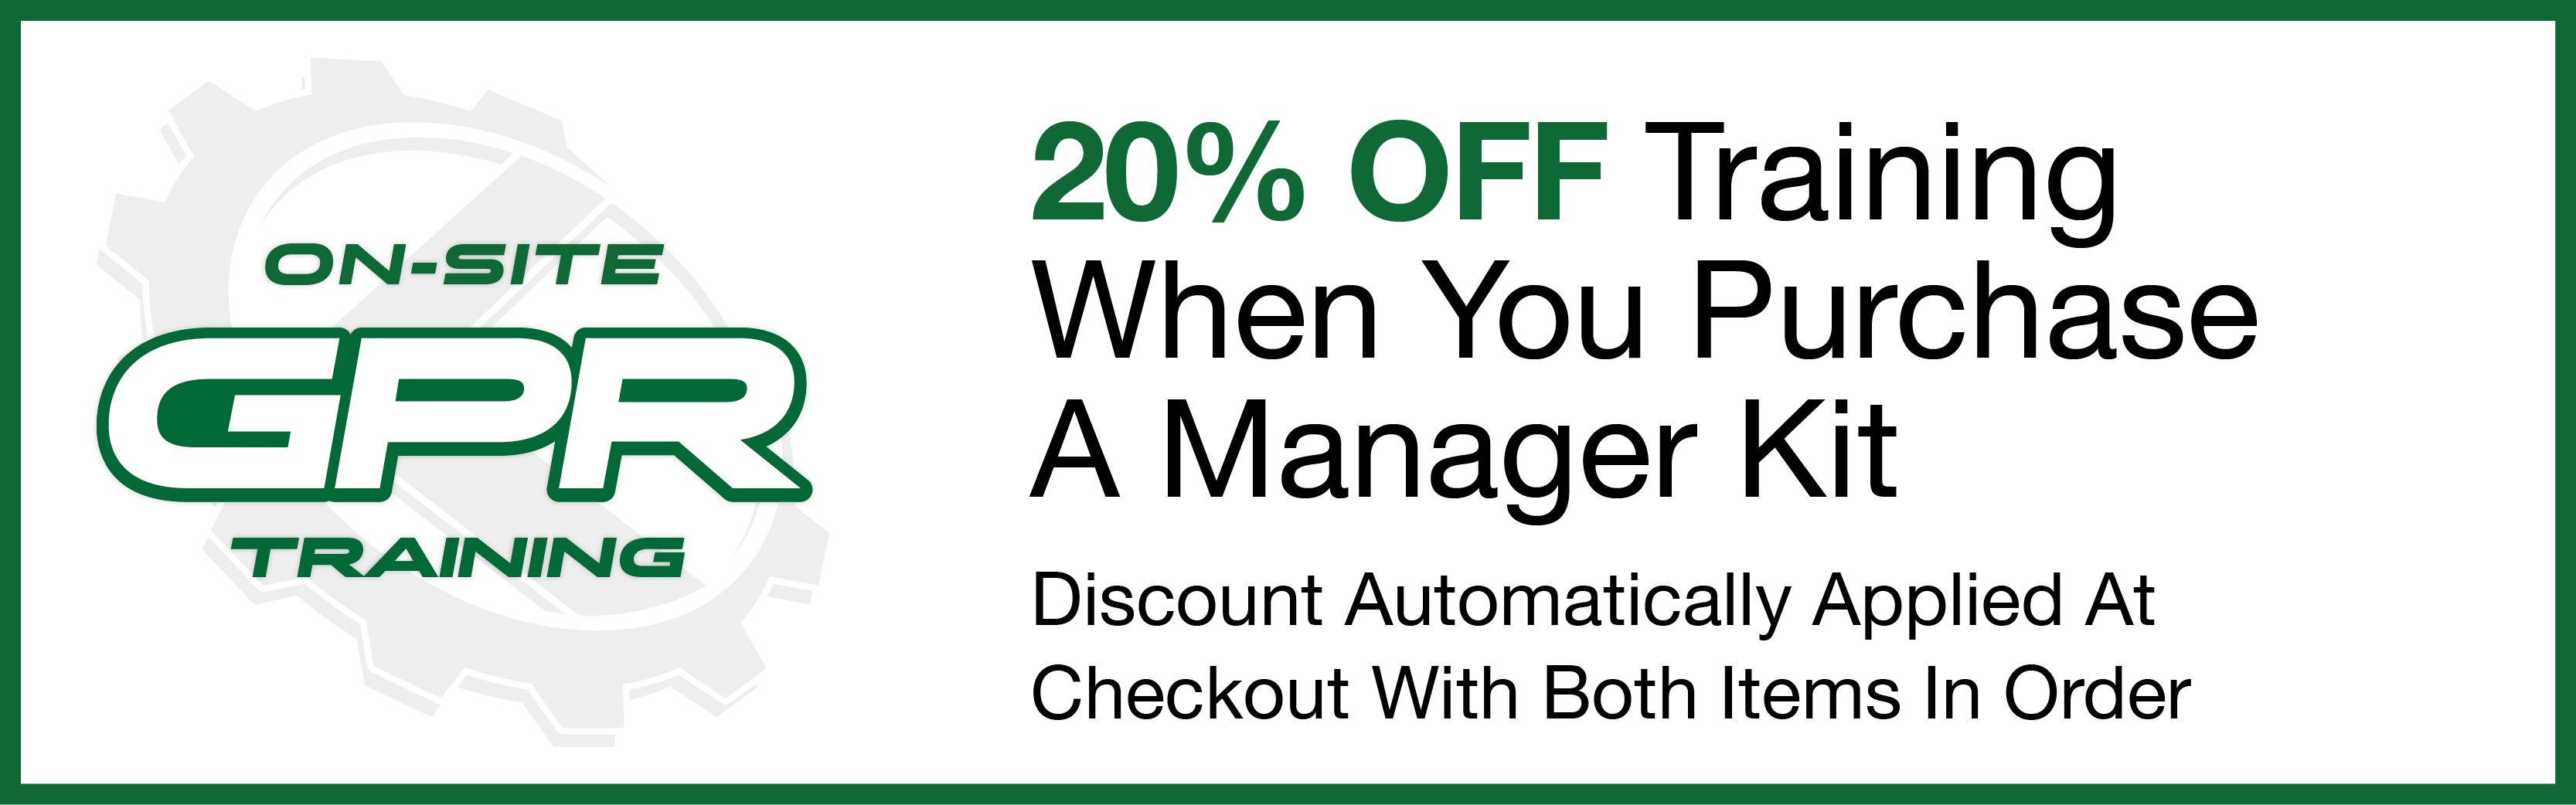 20% Off Training When You Purchase A Manager Kit - Discount Automatically Applied At Checkout With Both Items In Order